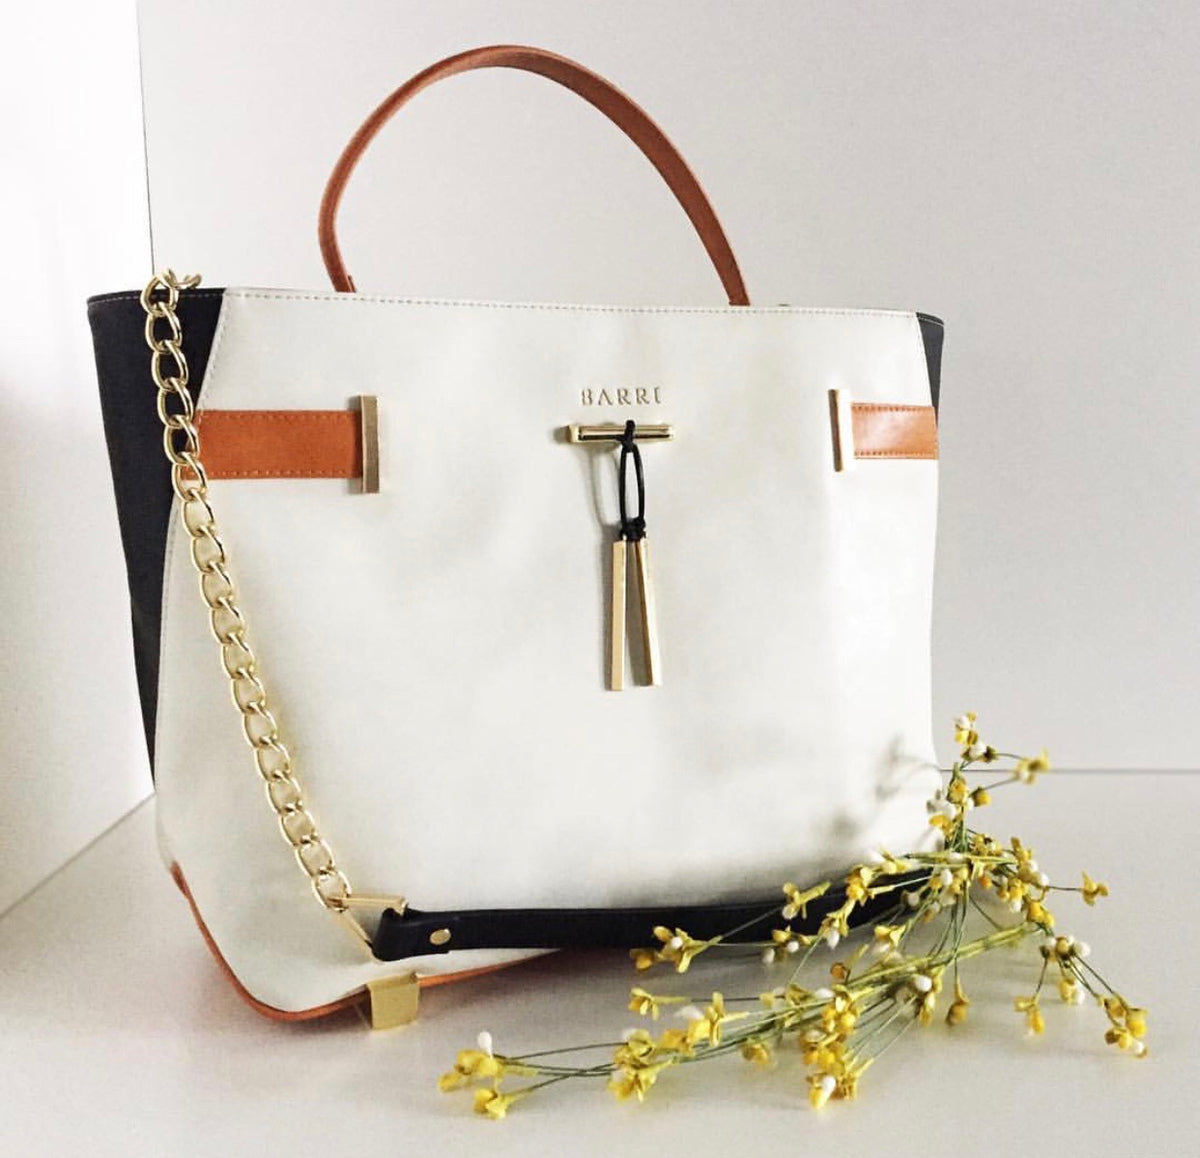 Mitchell City Bag by Barri